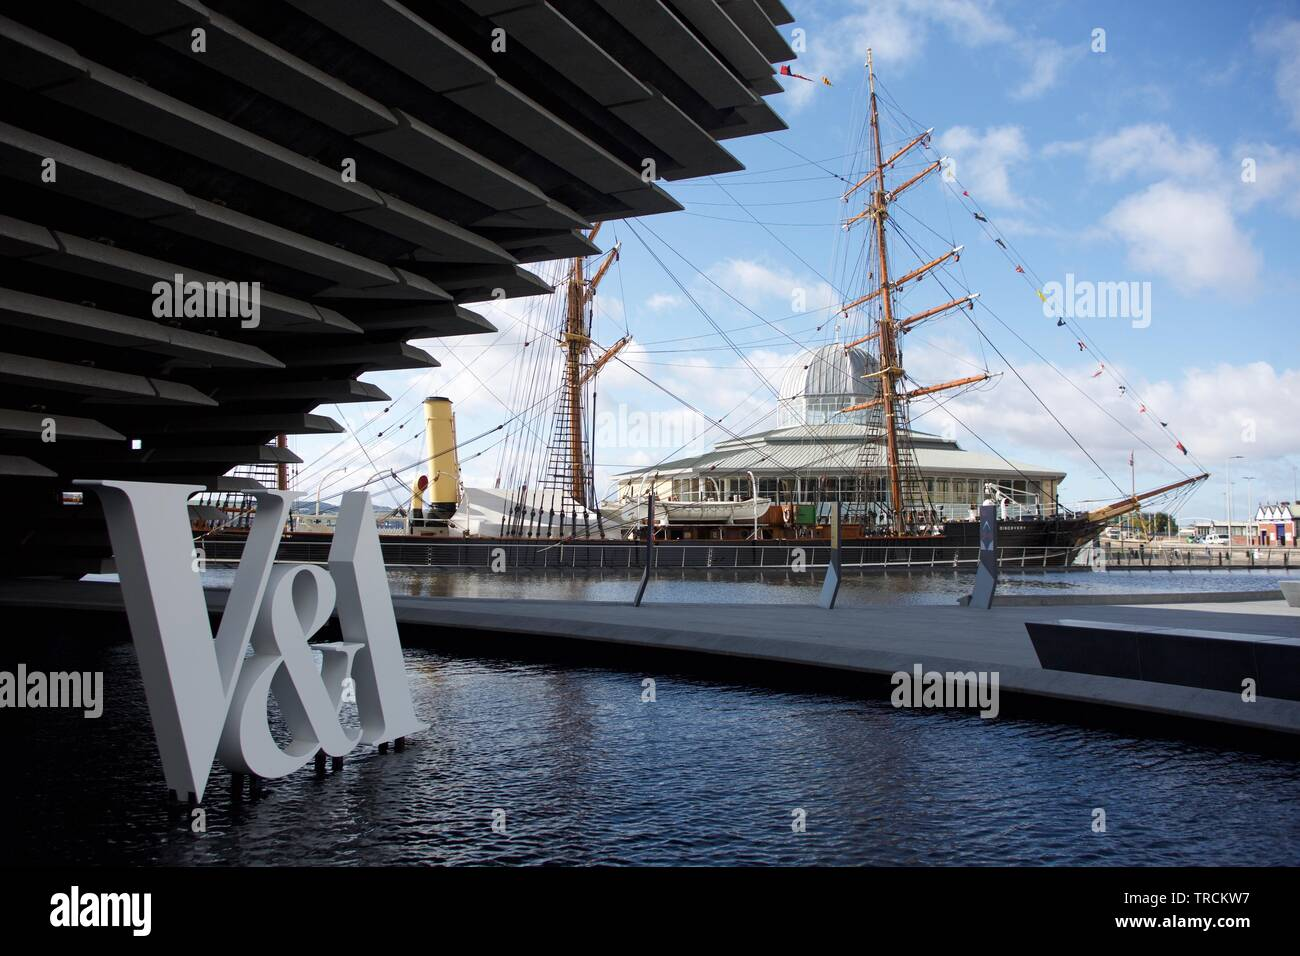 Dundee, UK, 12th September 2018: The V&A museum at Dundee opened alongside Captain Scott's RRS Discovery. Credit: Terry Murden, Alamy - Stock Image